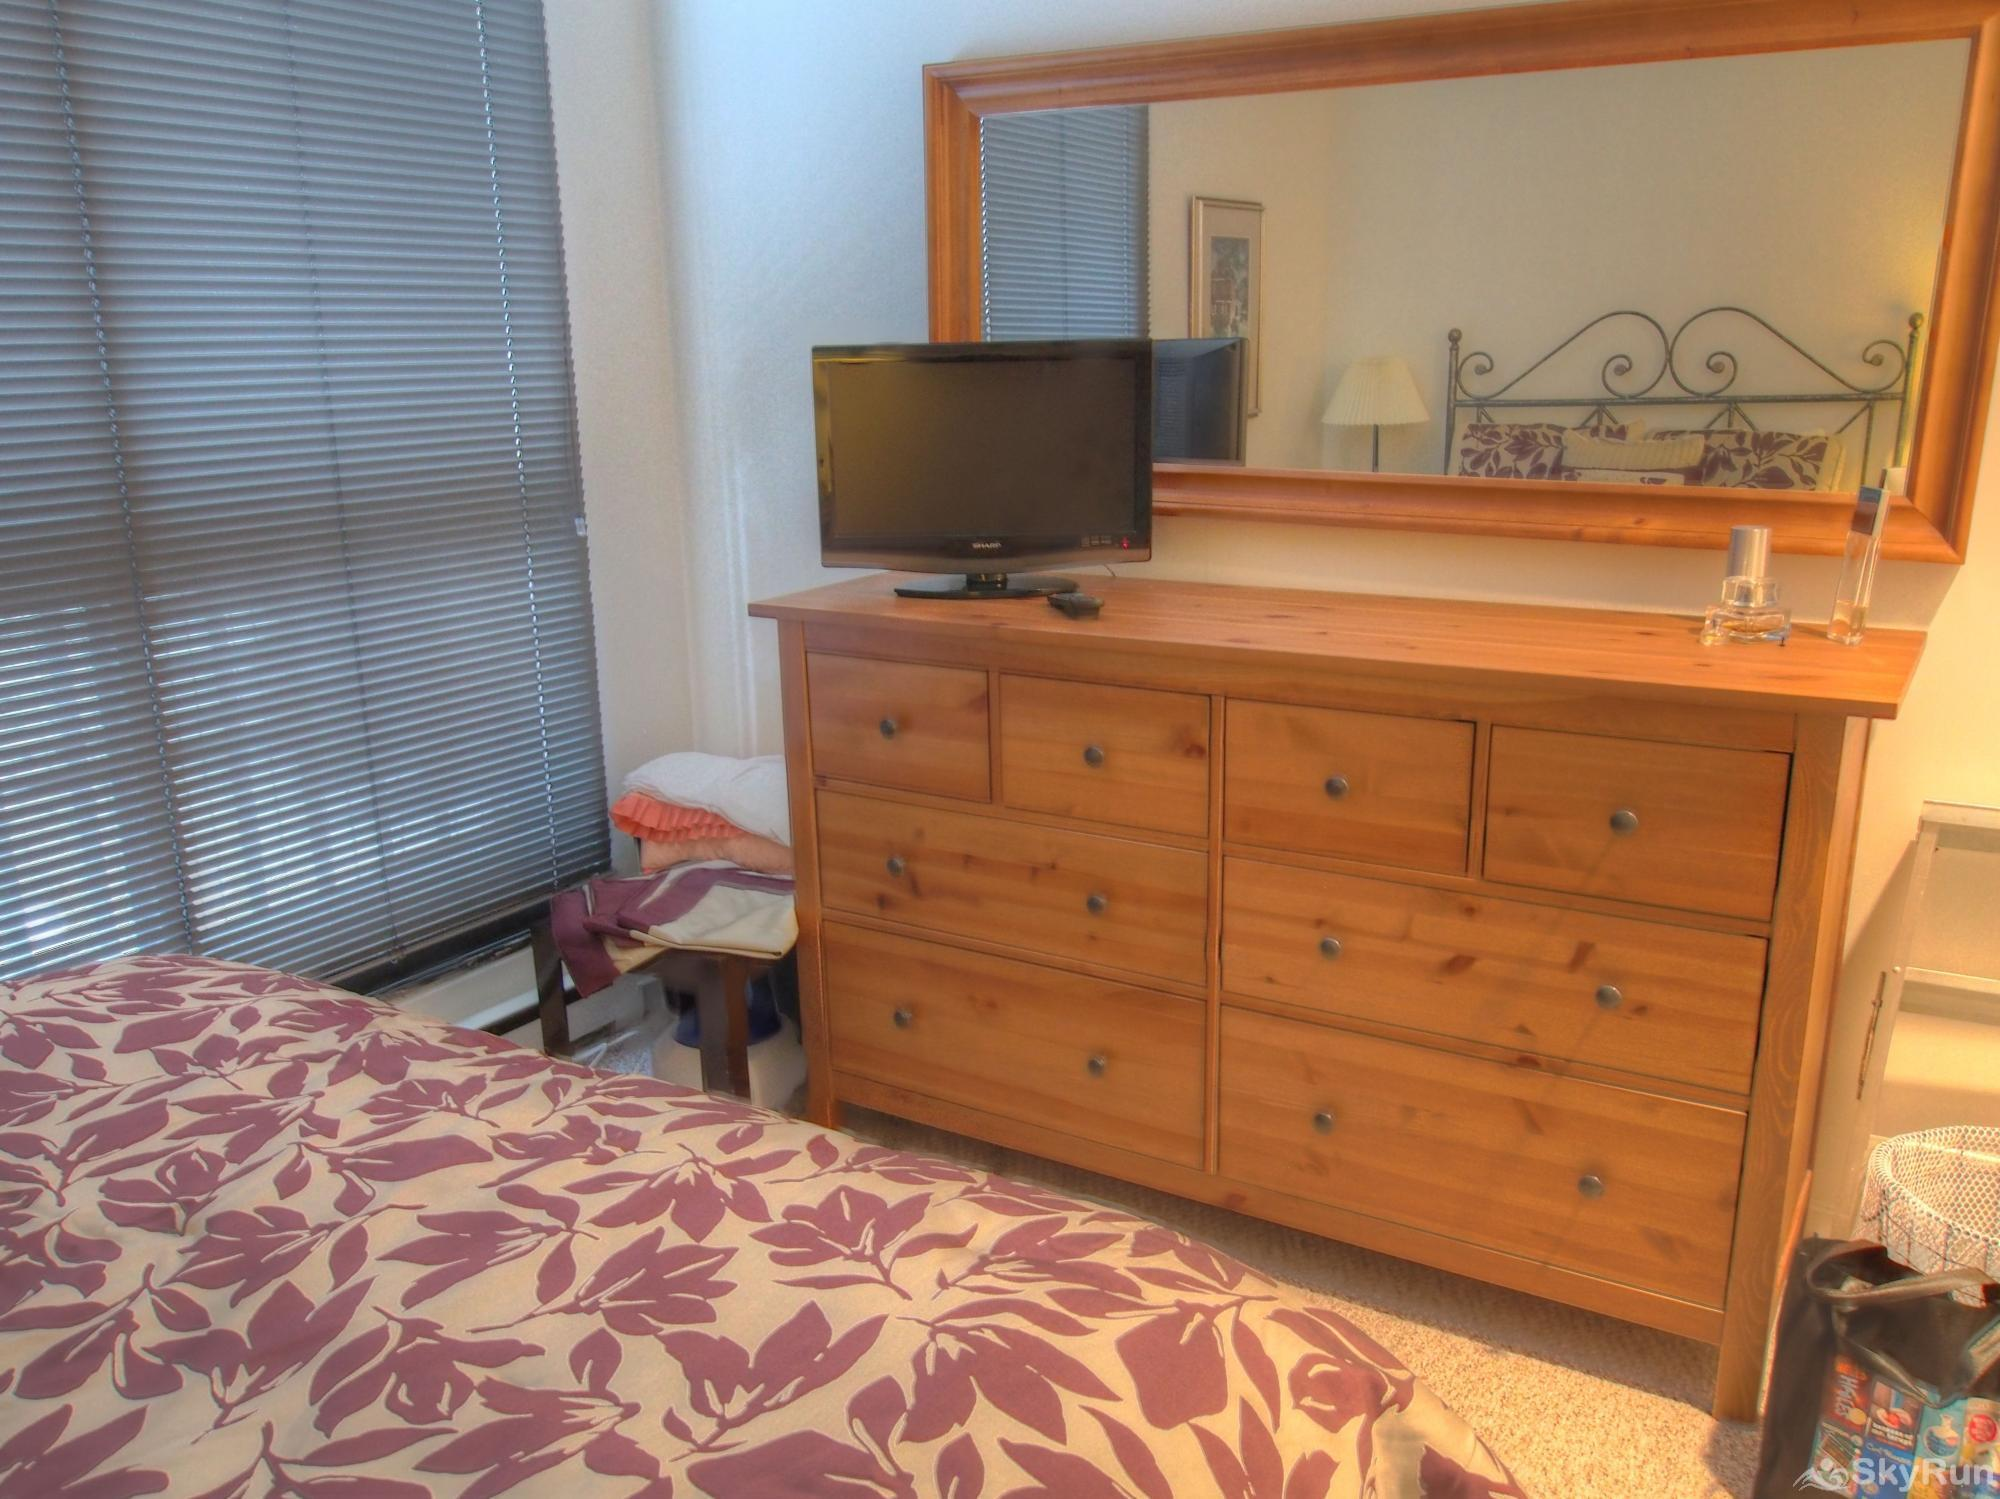 19 Village Run Bedroom with dresser and tv